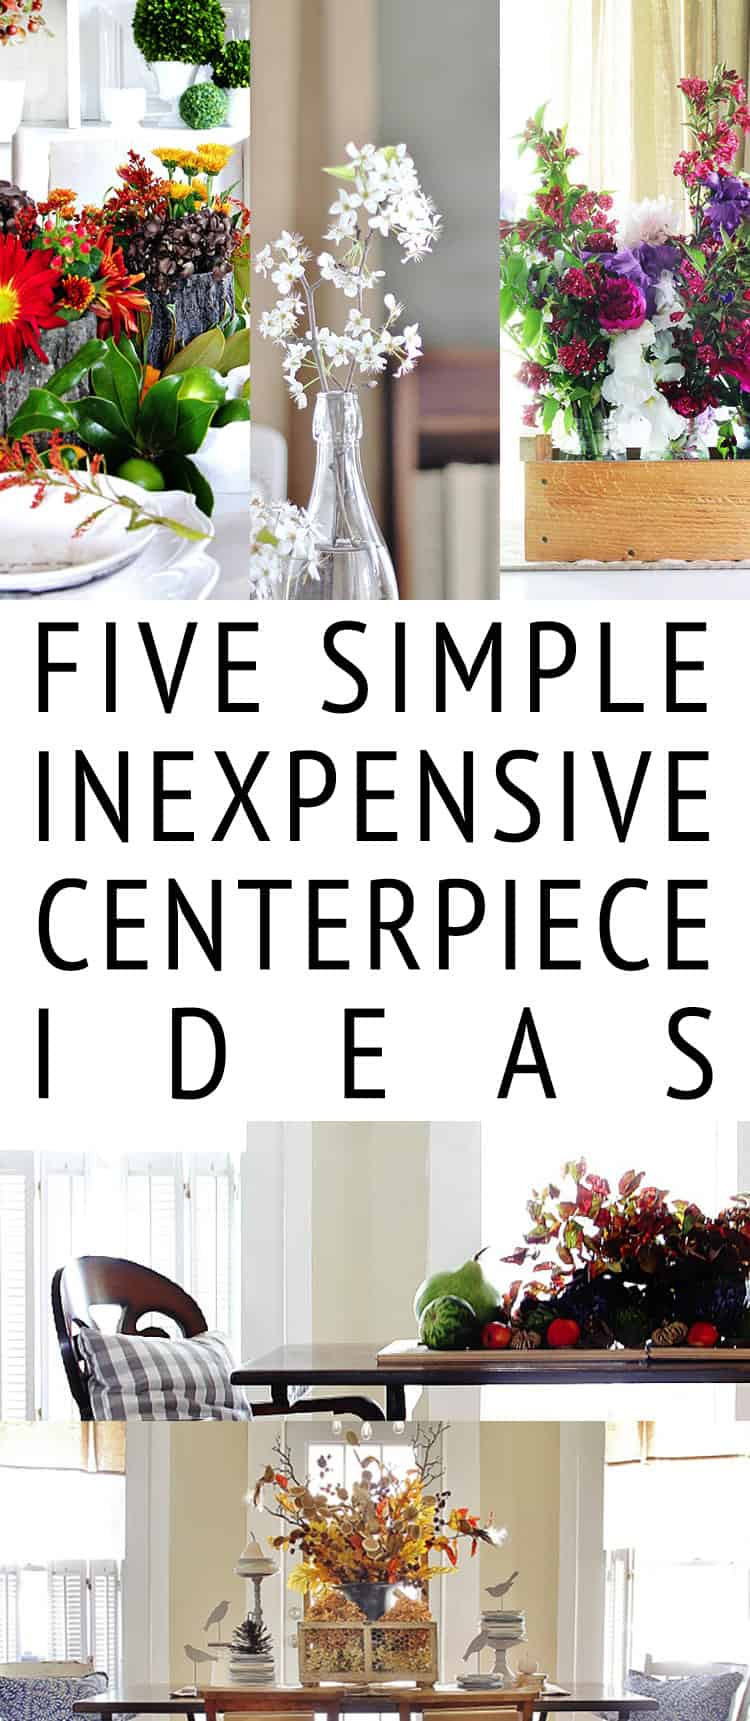 Five simple and inexpensive centerpiece ideas